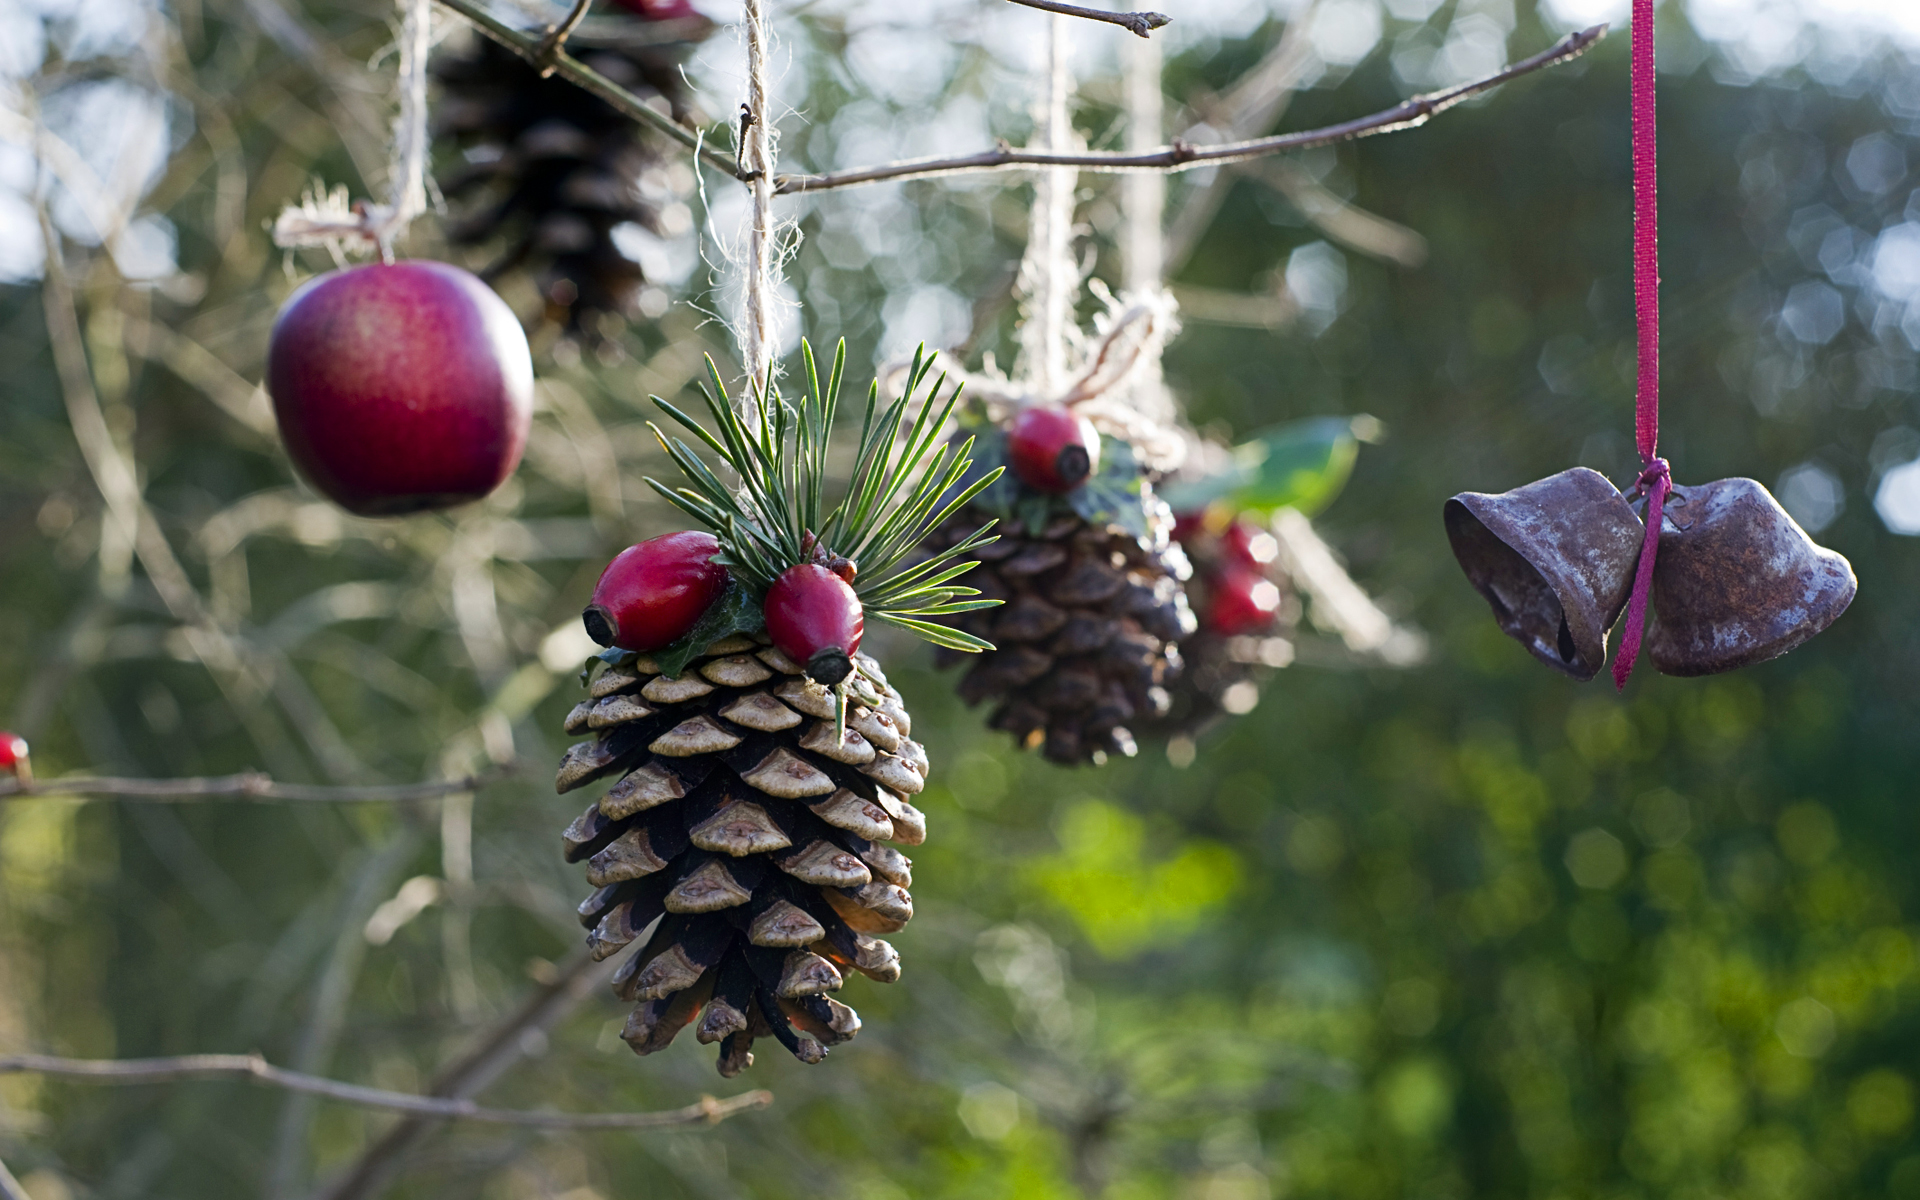 Outdoor christmas tree decorations - Outdoor Christmas Tree 40 Image Source